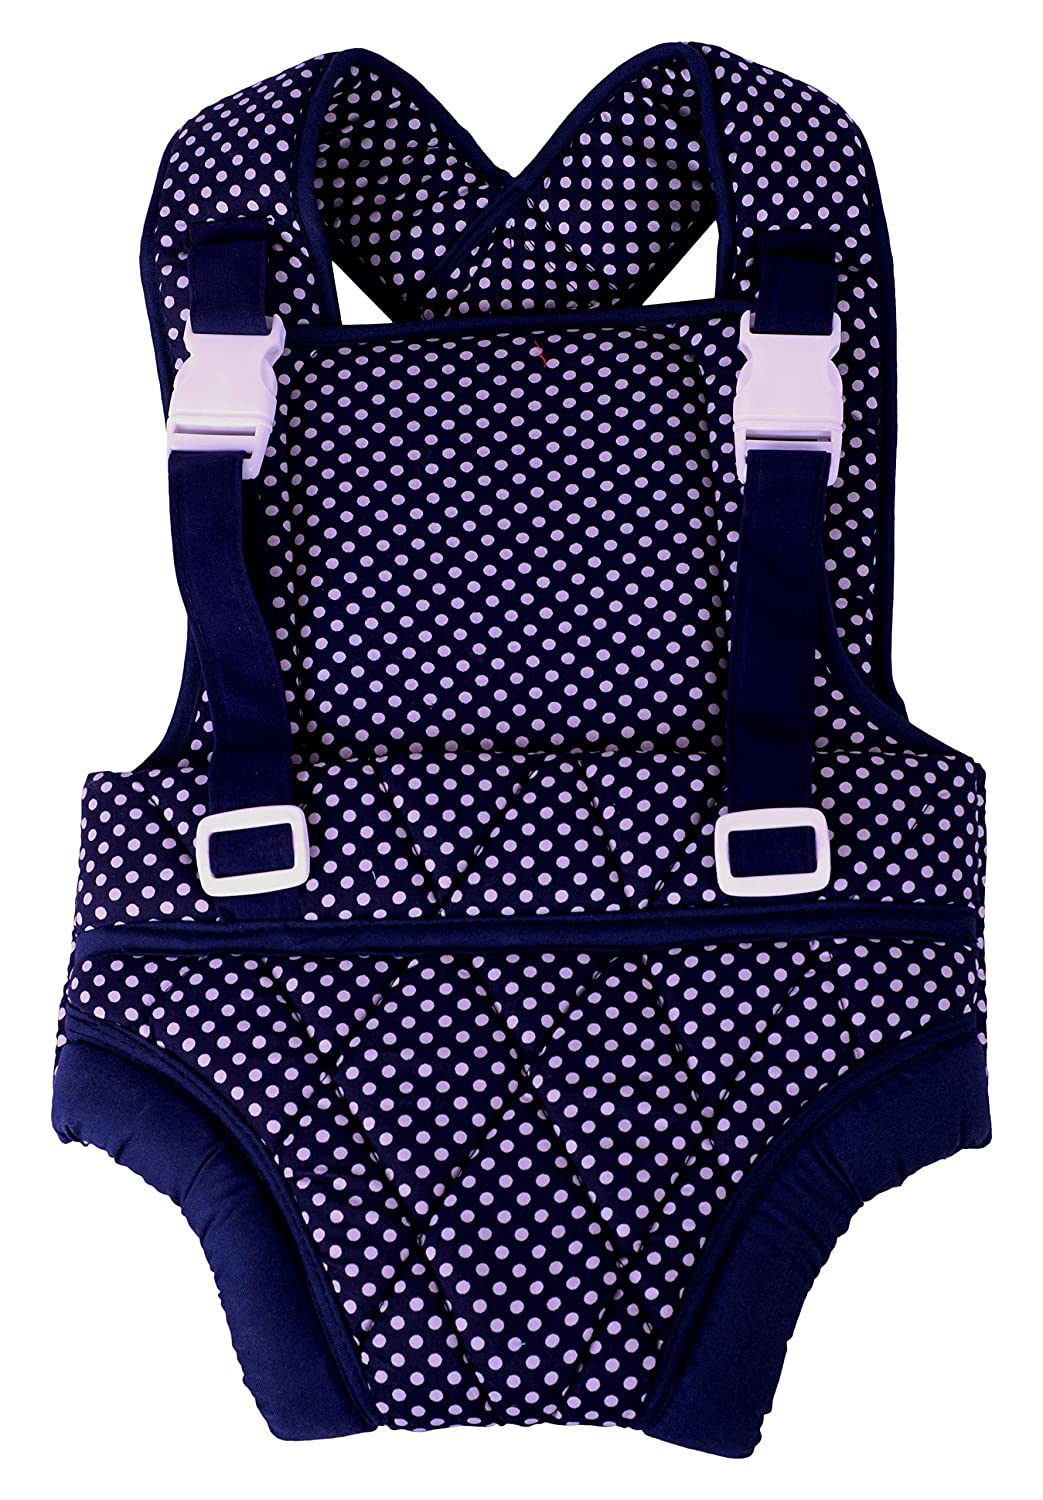 this is the best baby carrier in india 2019